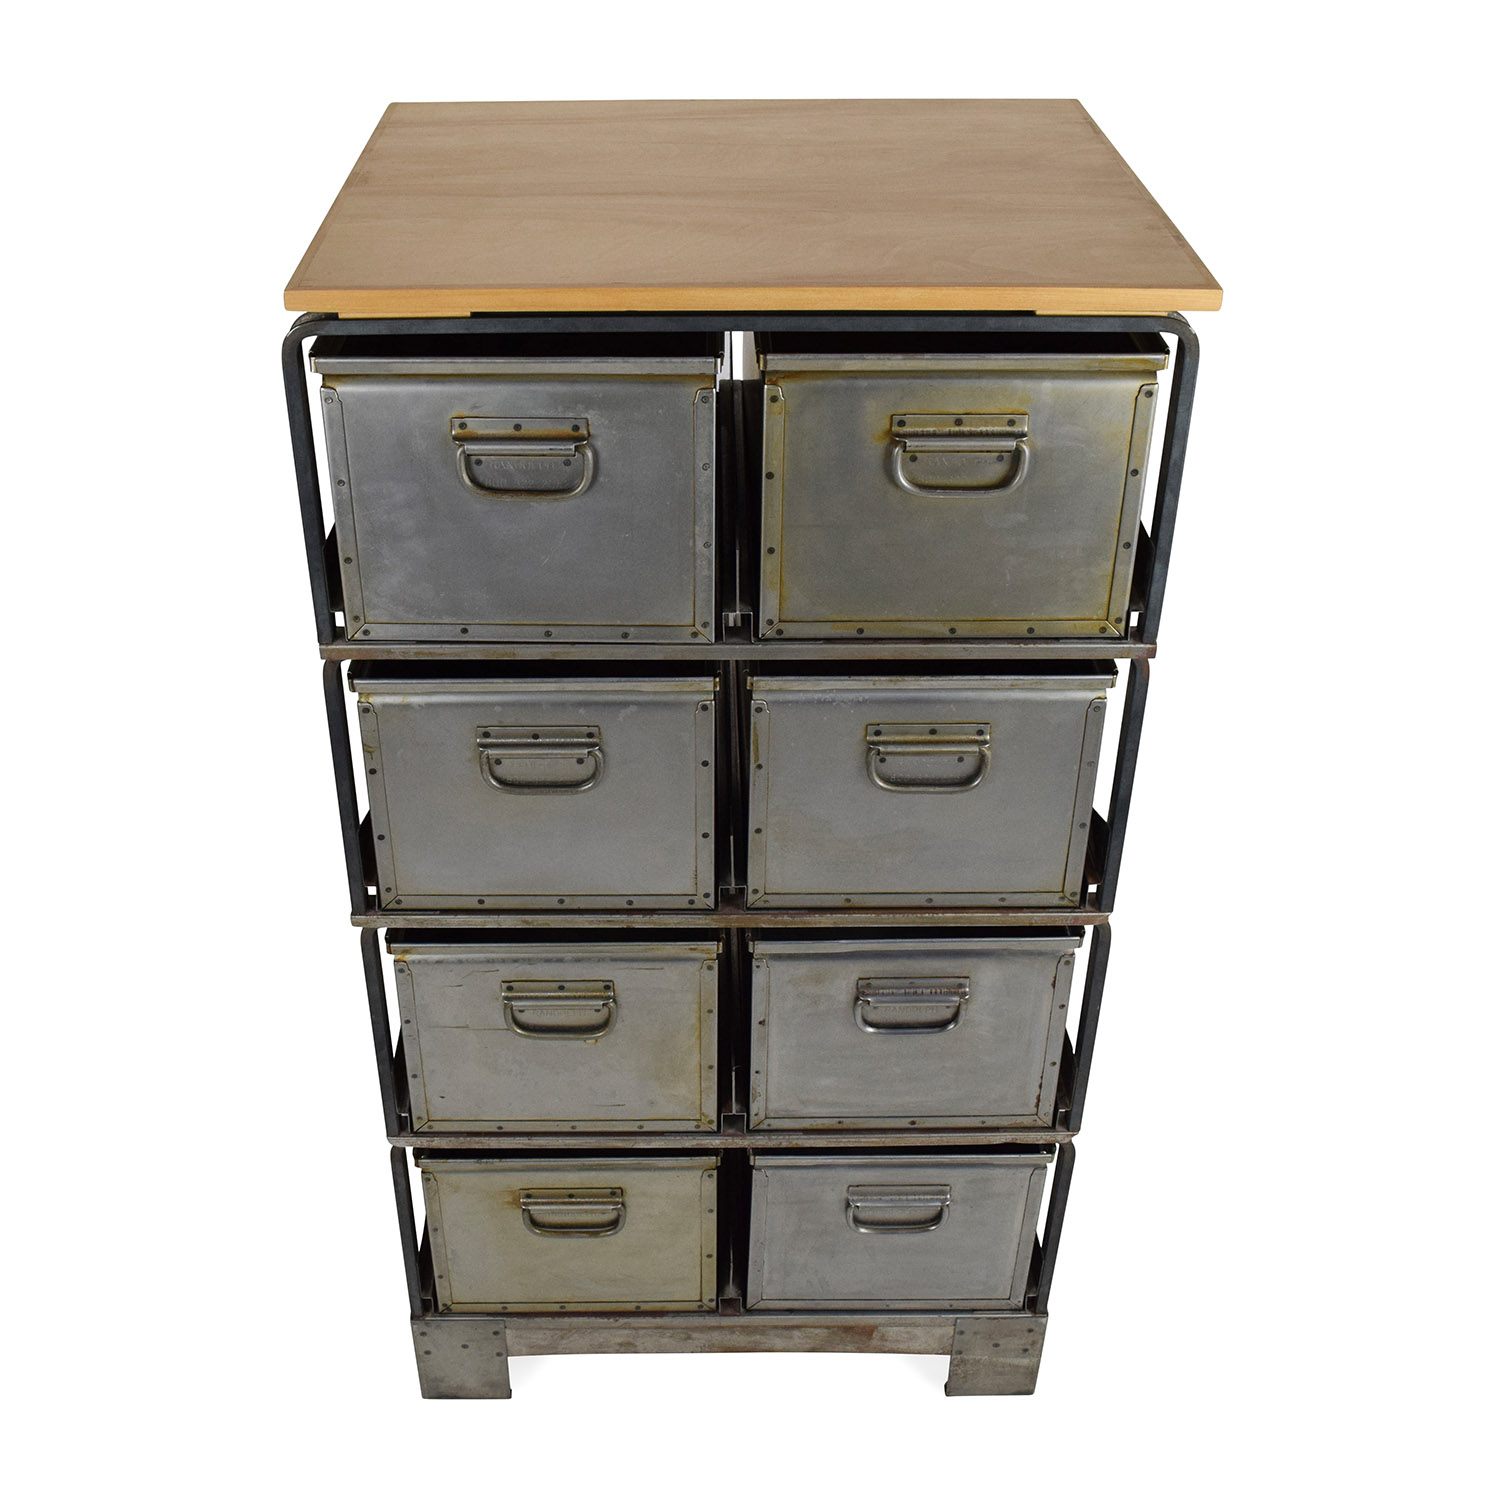 buy Unknown Brand Metal Storage Bins online